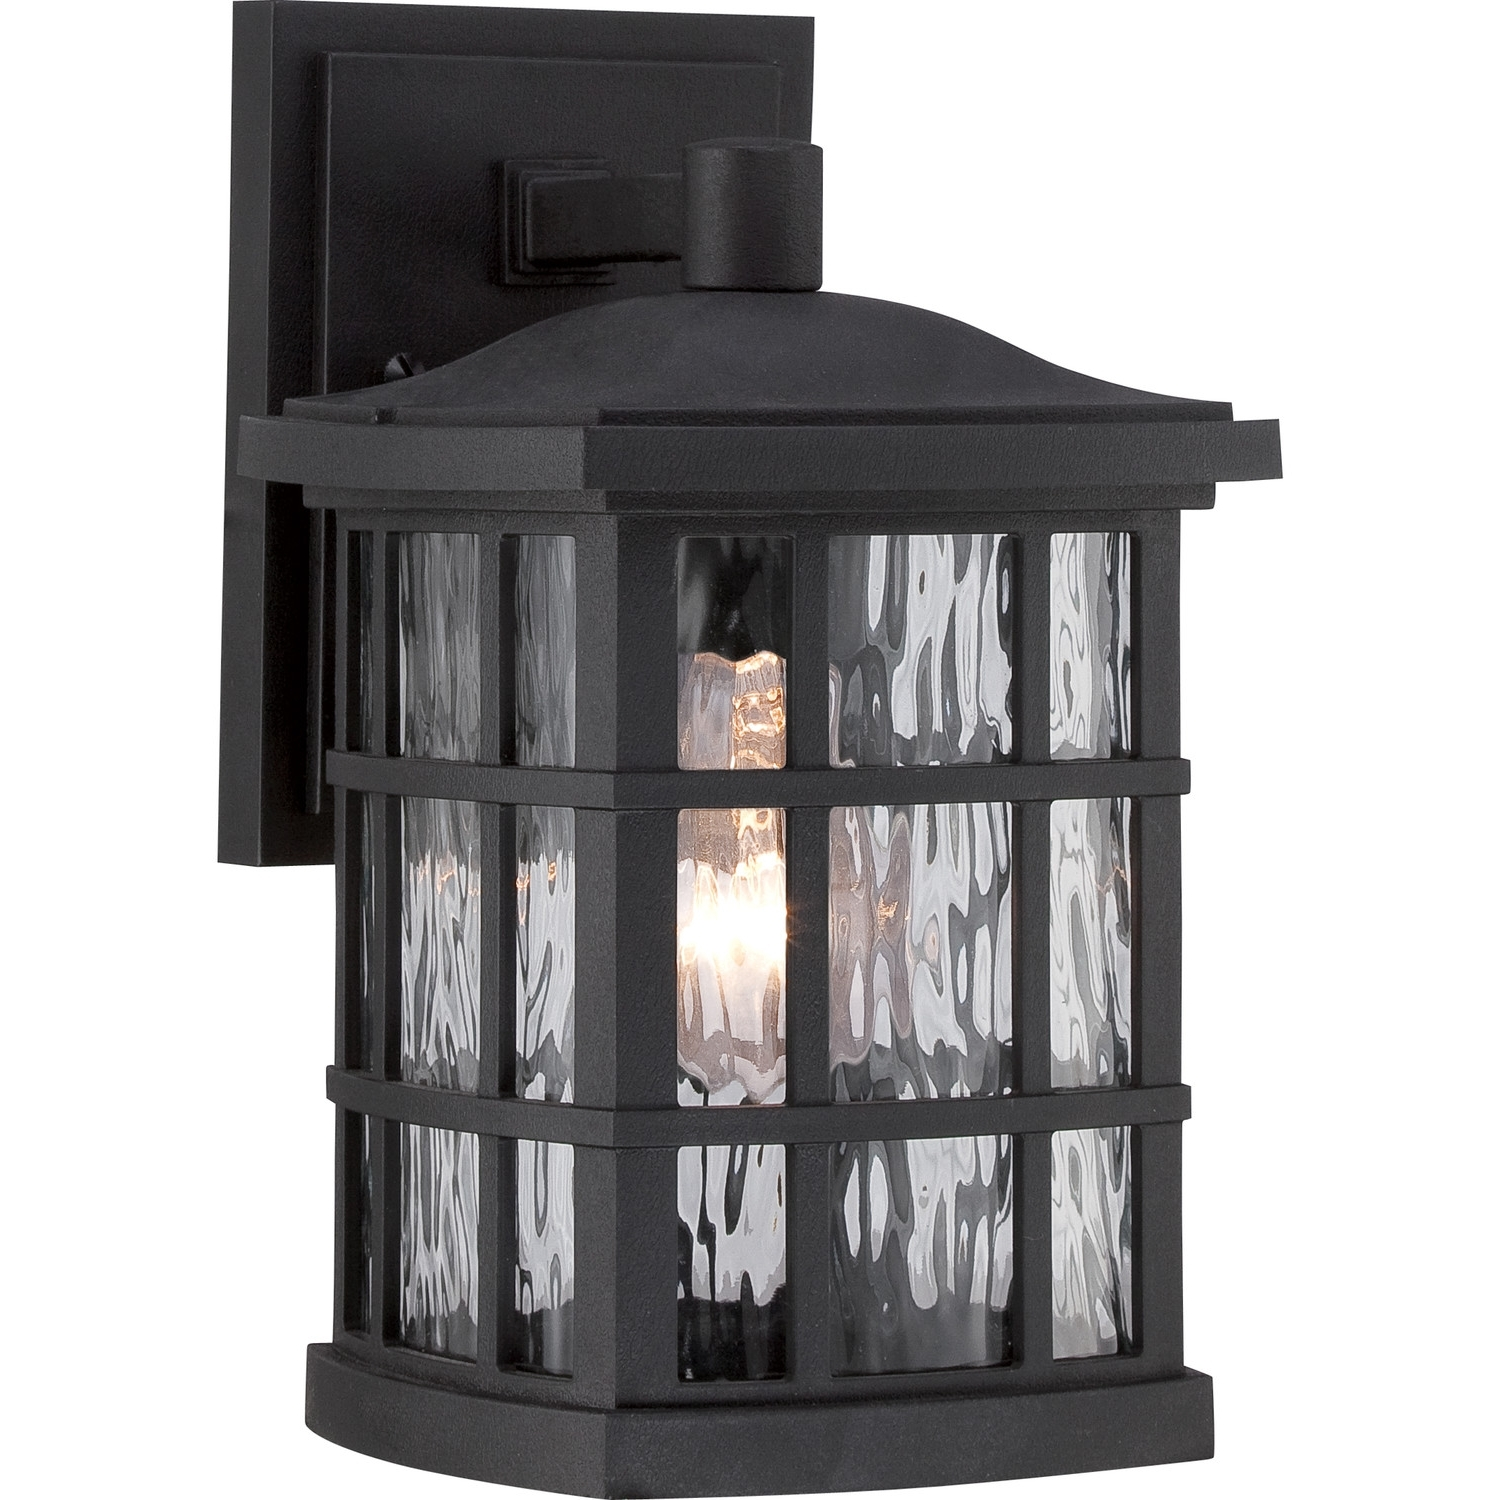 2018 Outdoor Lighting Fixtures At Wayfair Within Furniture : Luxury Wayfair Outdoor Lighting Home Decoration Ideas (View 16 of 20)